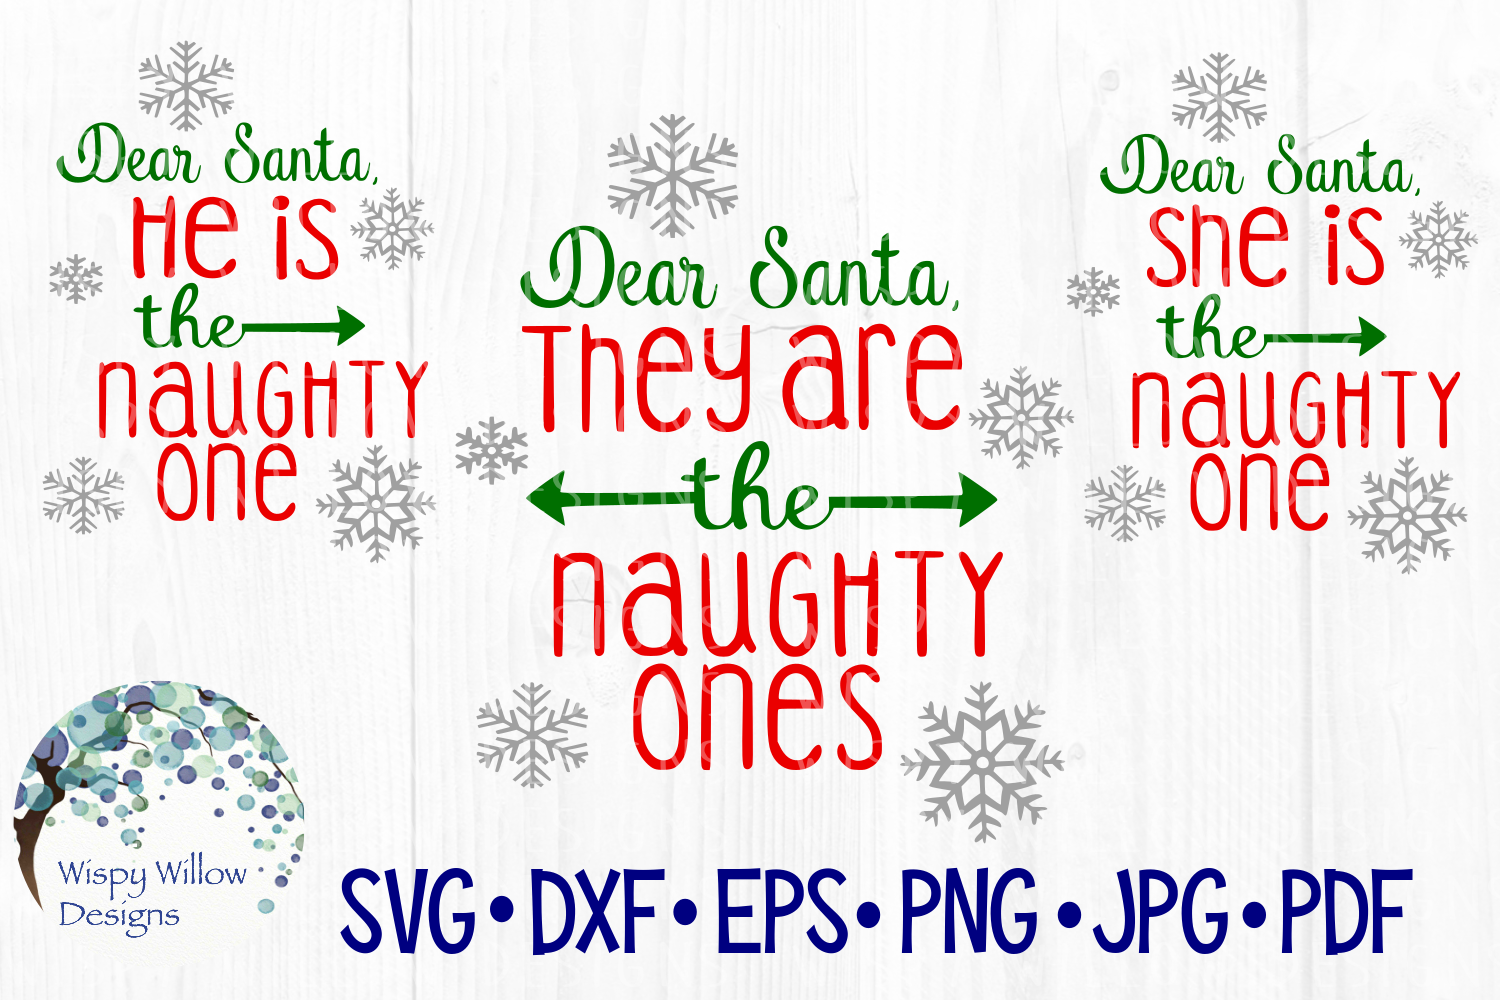 Download Free Dear Santa They Are The Naughty Ones He Is She Is Funny for Cricut Explore, Silhouette and other cutting machines.